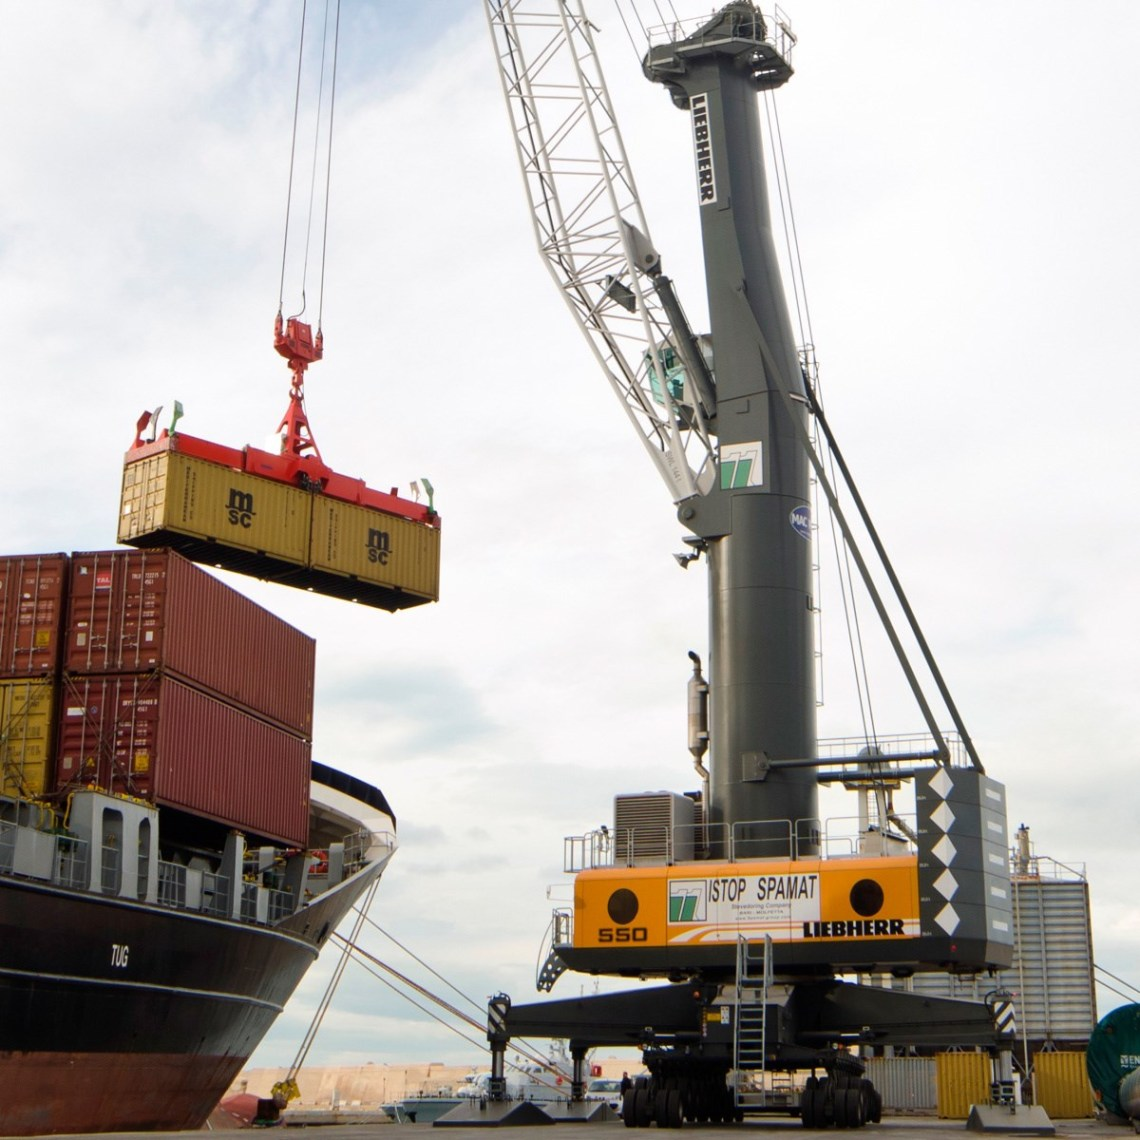 liebherr-lhm-550-mobile-harbour-crane-container-twinlift-macport-italy